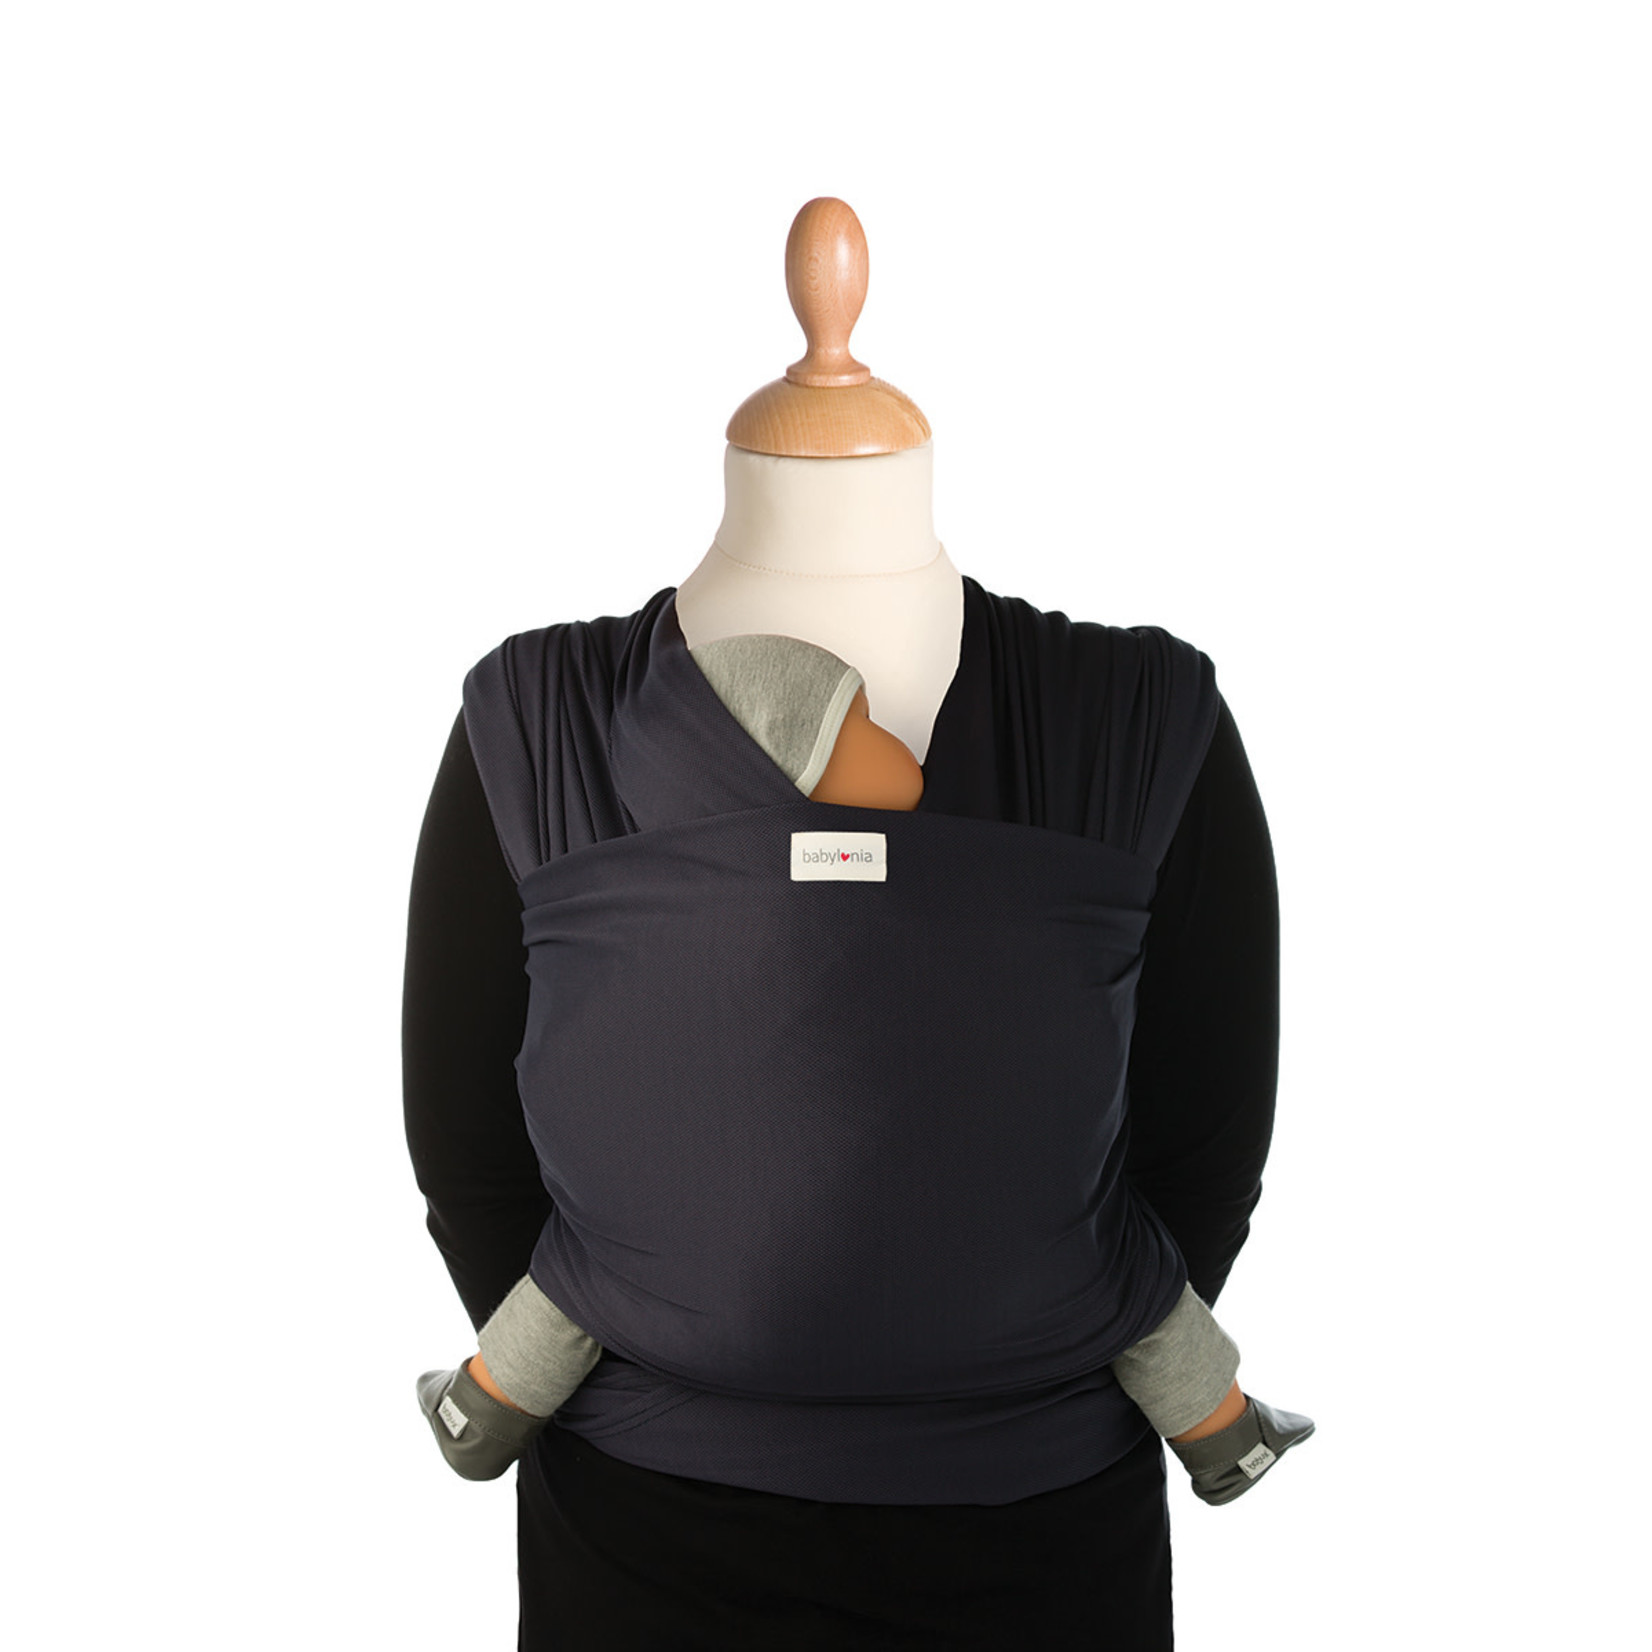 Babylonia baby carriers Babylonia baby carriers - Tricot-Slen Cool - Navy blue - One size